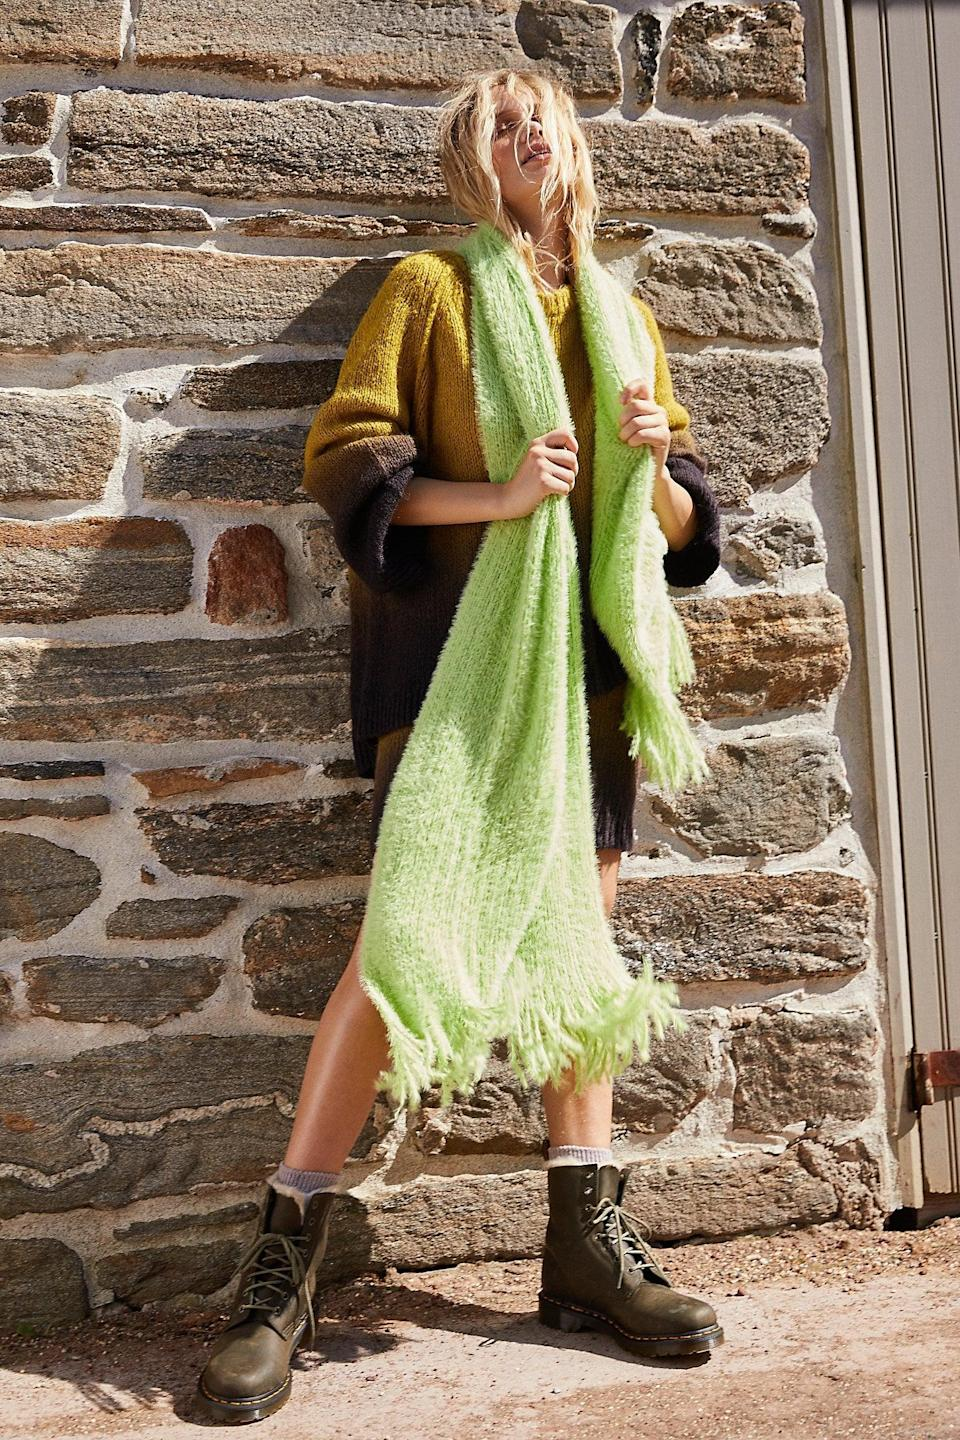 """<p>Chilly days require this <a href=""""https://www.popsugar.com/buy/Whisper-Fringe-Blanket-Scarf-527149?p_name=Whisper%20Fringe%20Blanket%20Scarf&retailer=freepeople.com&pid=527149&price=48&evar1=fab%3Aus&evar9=45460327&evar98=https%3A%2F%2Fwww.popsugar.com%2Ffashion%2Fphoto-gallery%2F45460327%2Fimage%2F46977999%2FWhisper-Fringe-Blanket-Scarf&list1=shopping%2Cgifts%2Cfree%20people%2Choliday%2Cgift%20guide%2Cgifts%20for%20women&prop13=api&pdata=1"""" class=""""link rapid-noclick-resp"""" rel=""""nofollow noopener"""" target=""""_blank"""" data-ylk=""""slk:Whisper Fringe Blanket Scarf"""">Whisper Fringe Blanket Scarf</a> ($48).</p>"""